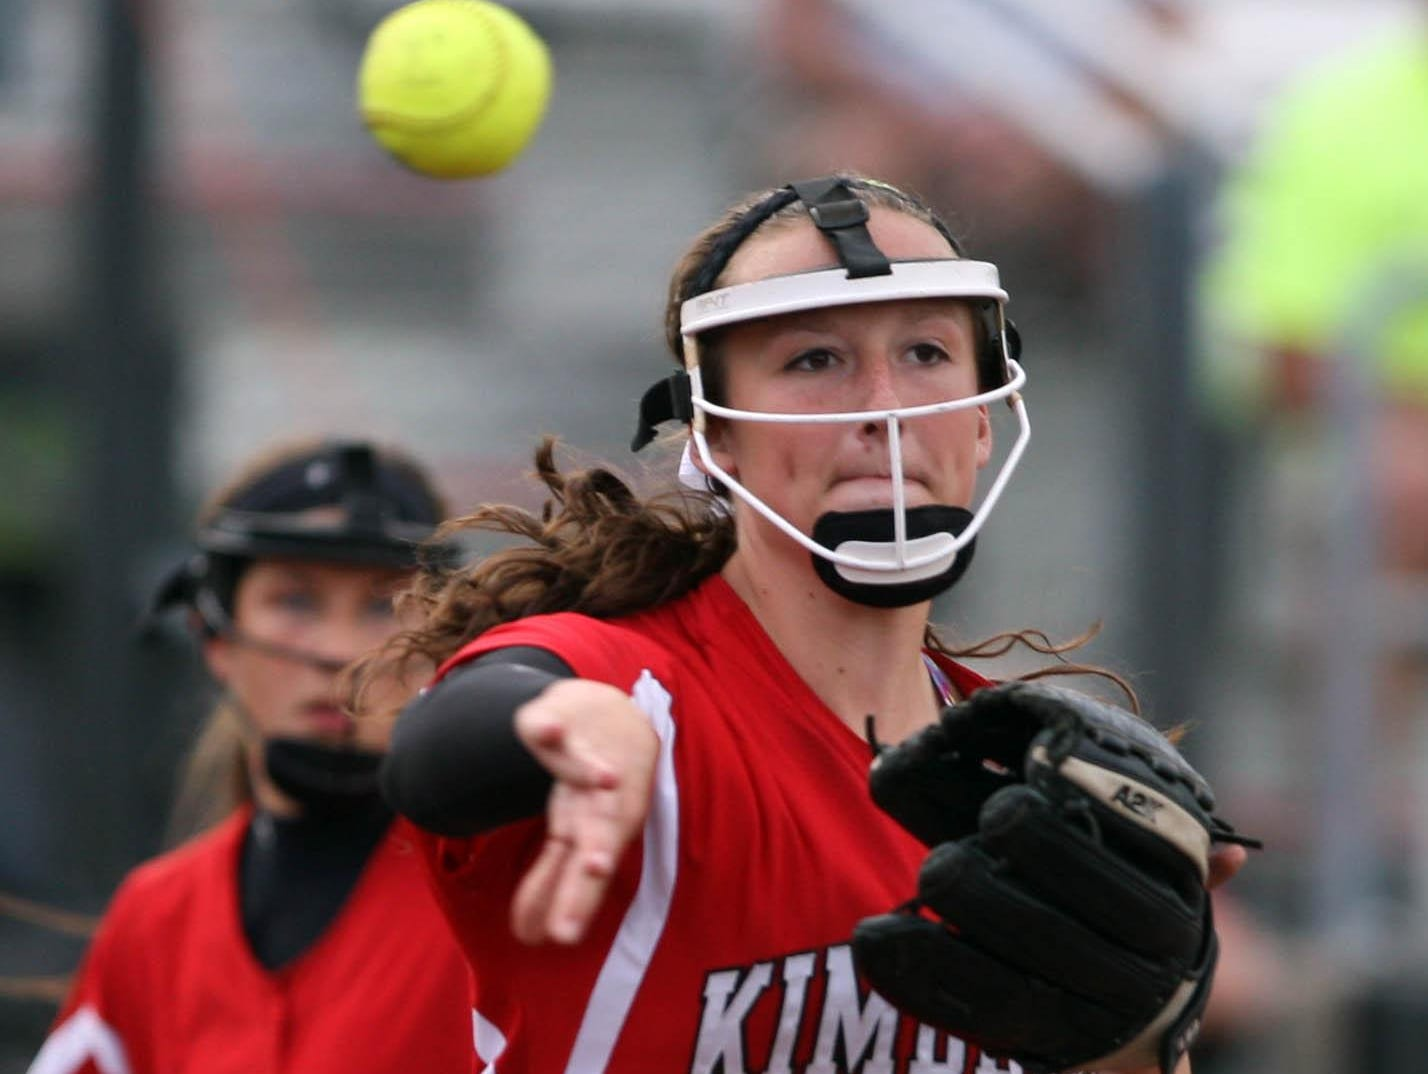 Megan Kleist played second base for the Kimberly Papermakers this season after a shoulder injury kept her off the mound.